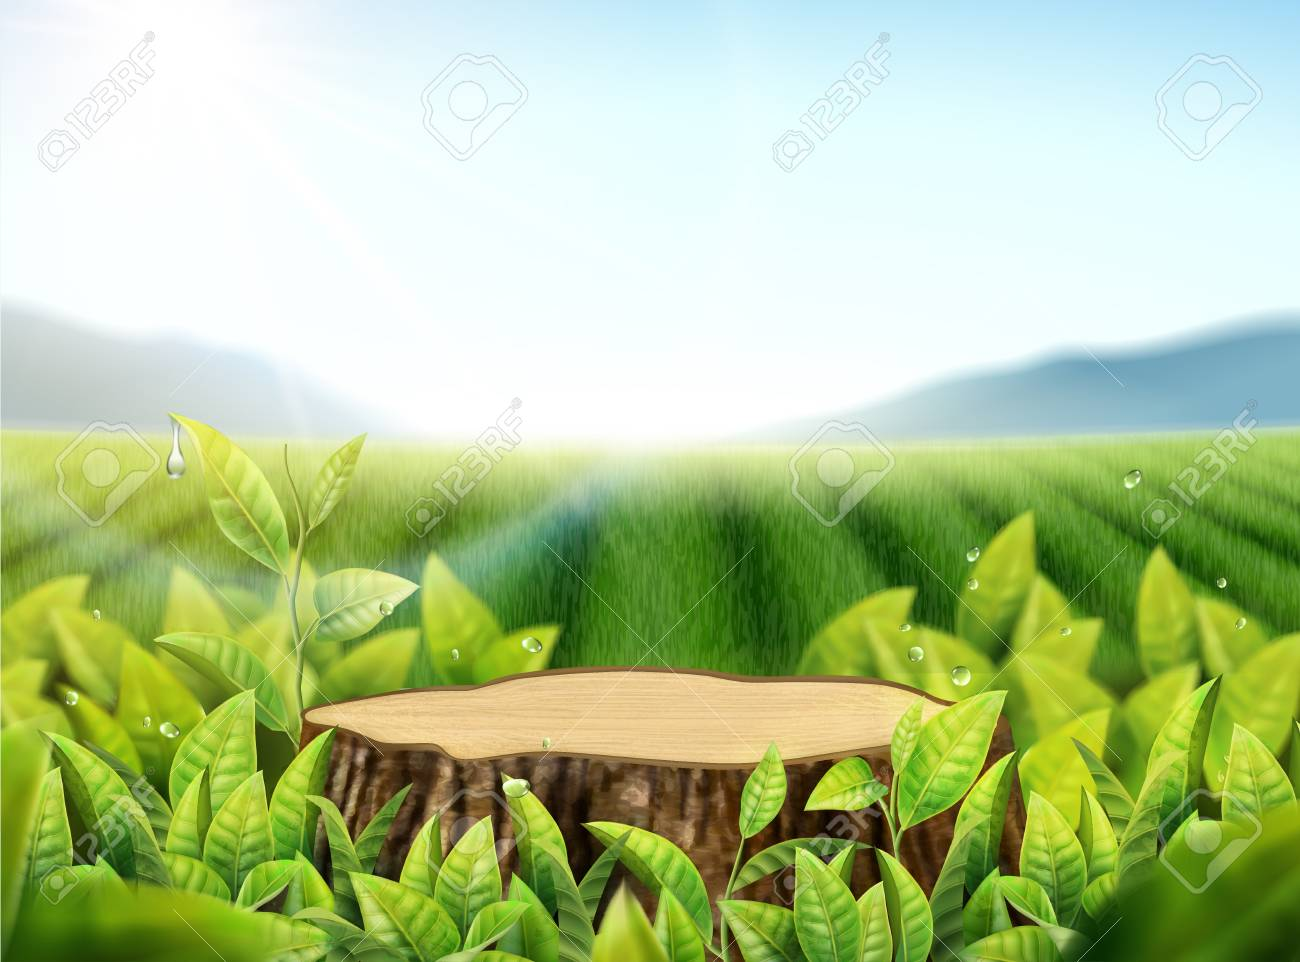 Nature tea garden background with leaves and cut tree trunk in..